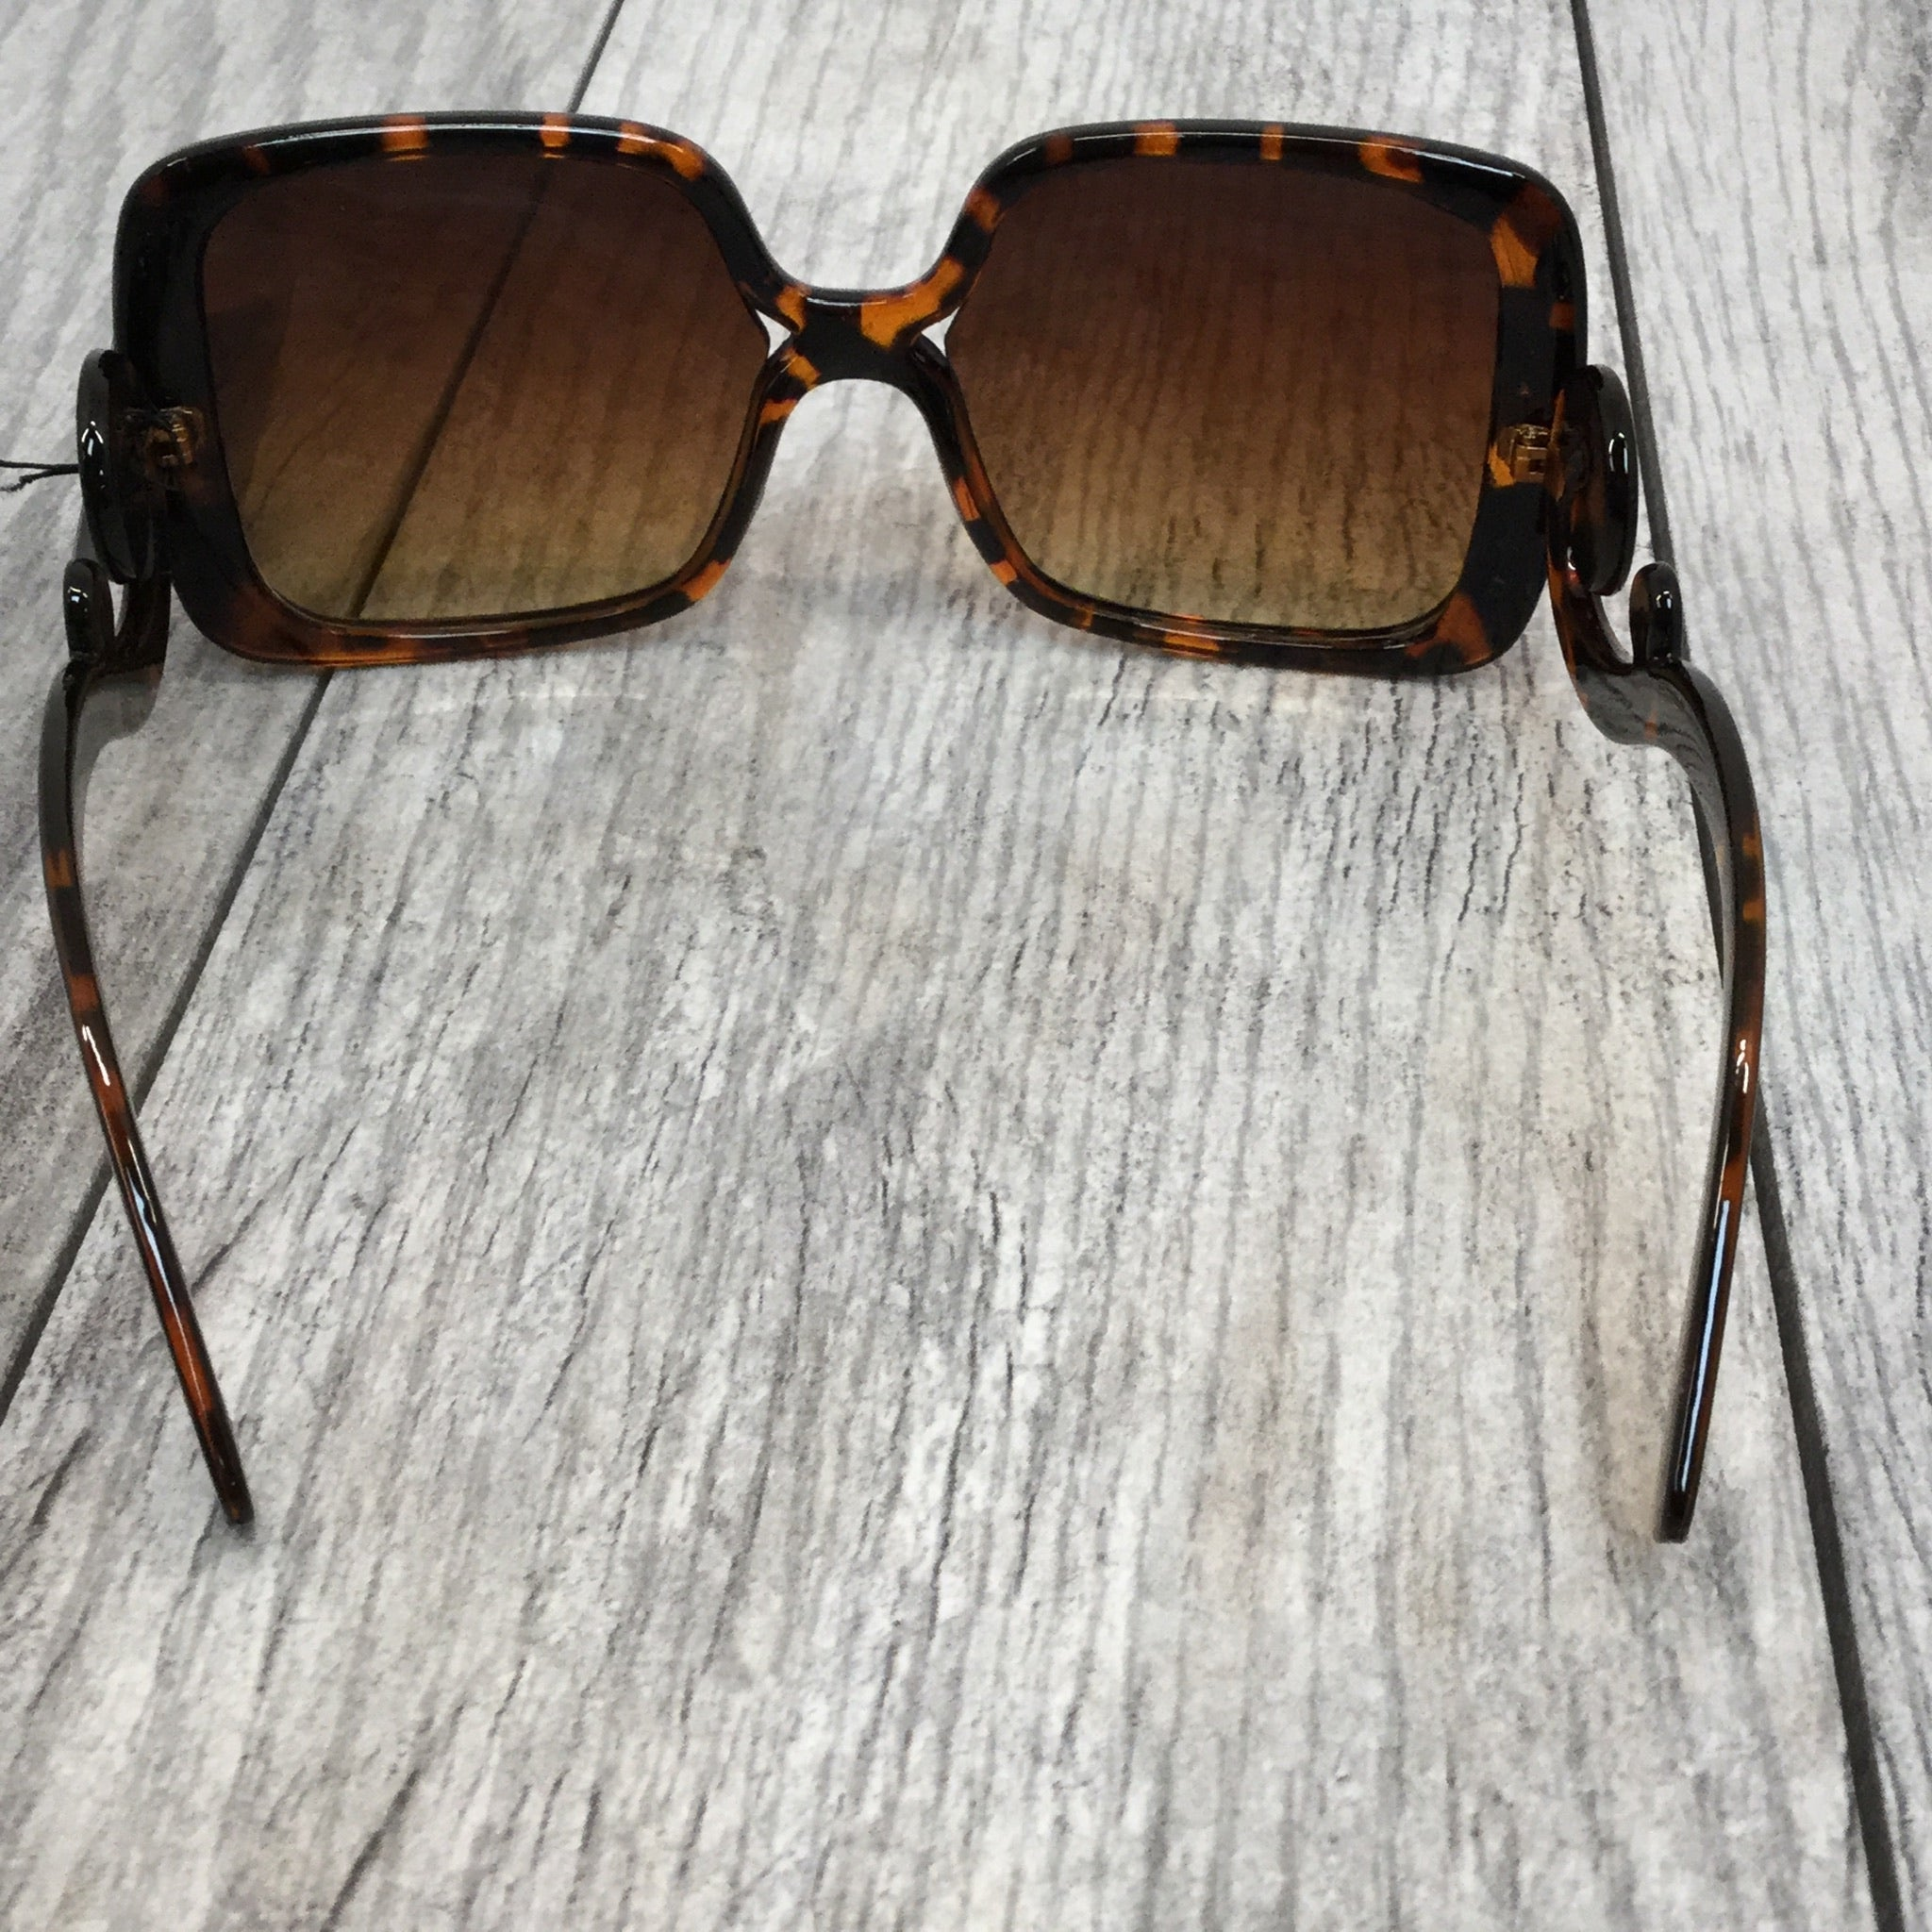 New!  Oversized Square Sunglasses